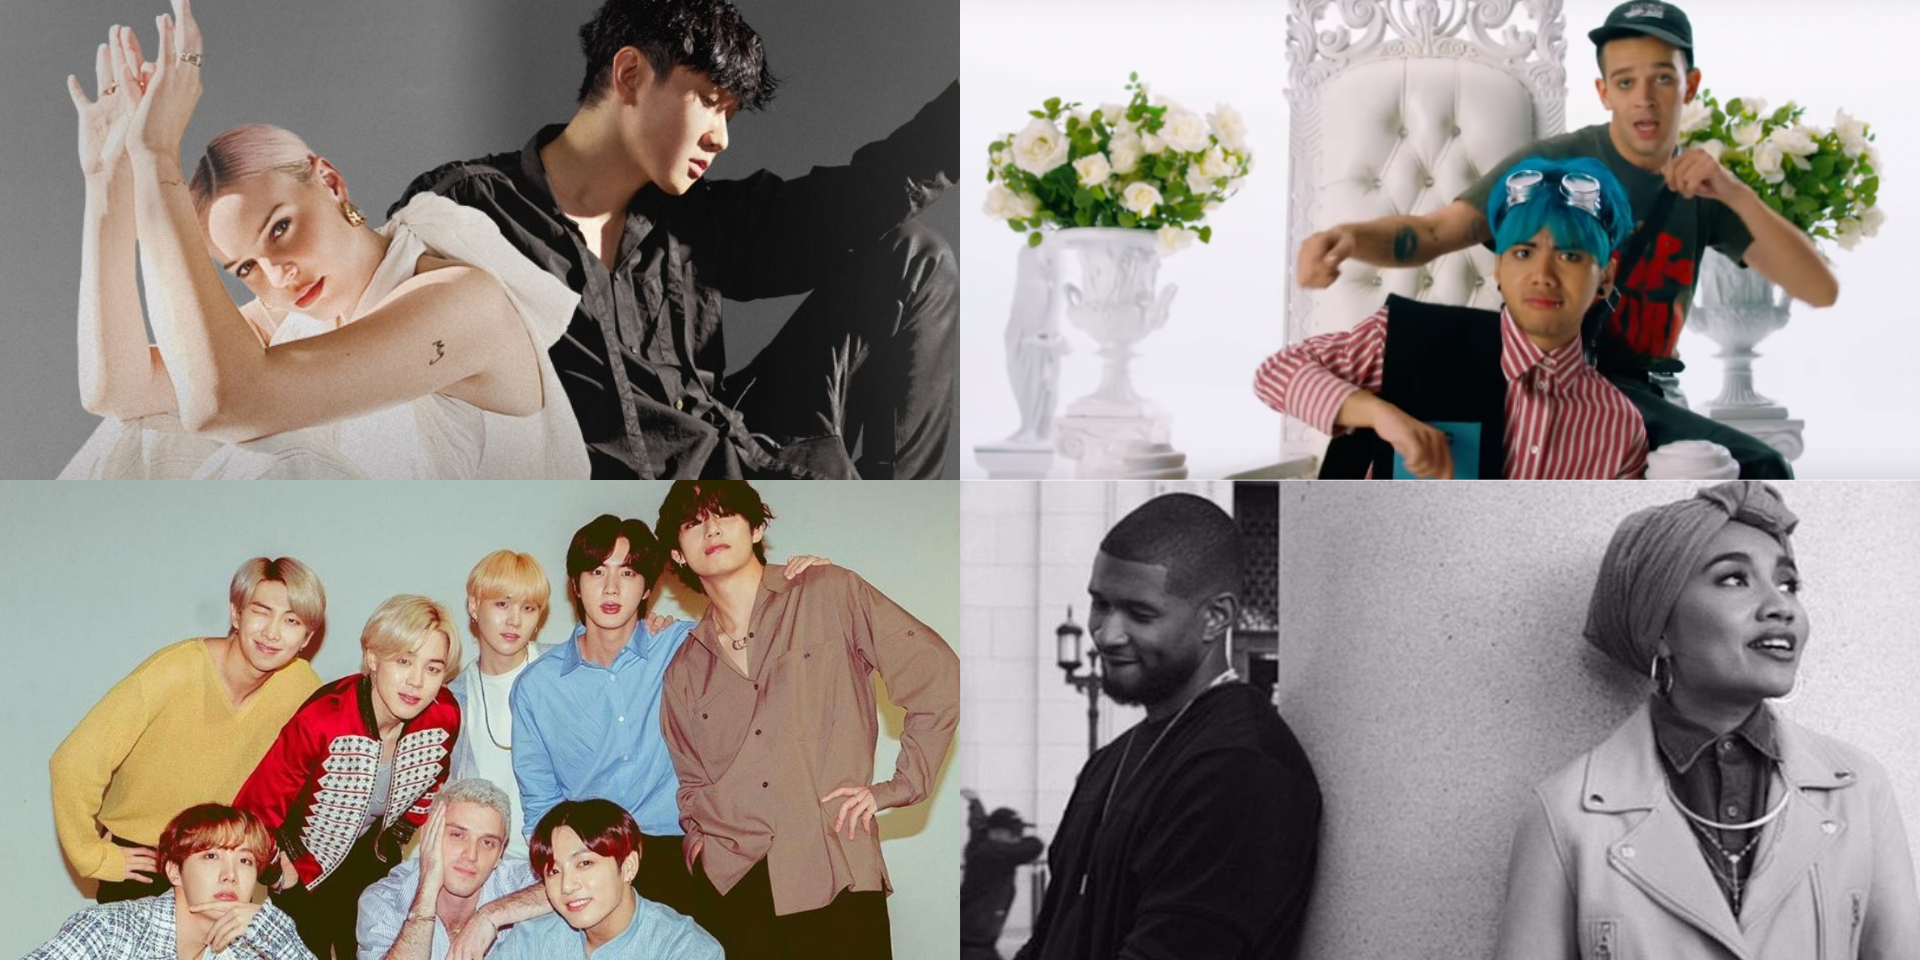 14 Asian and Western collaborations featuring JJ Lin, Yuna, BTS, No Rome, and more